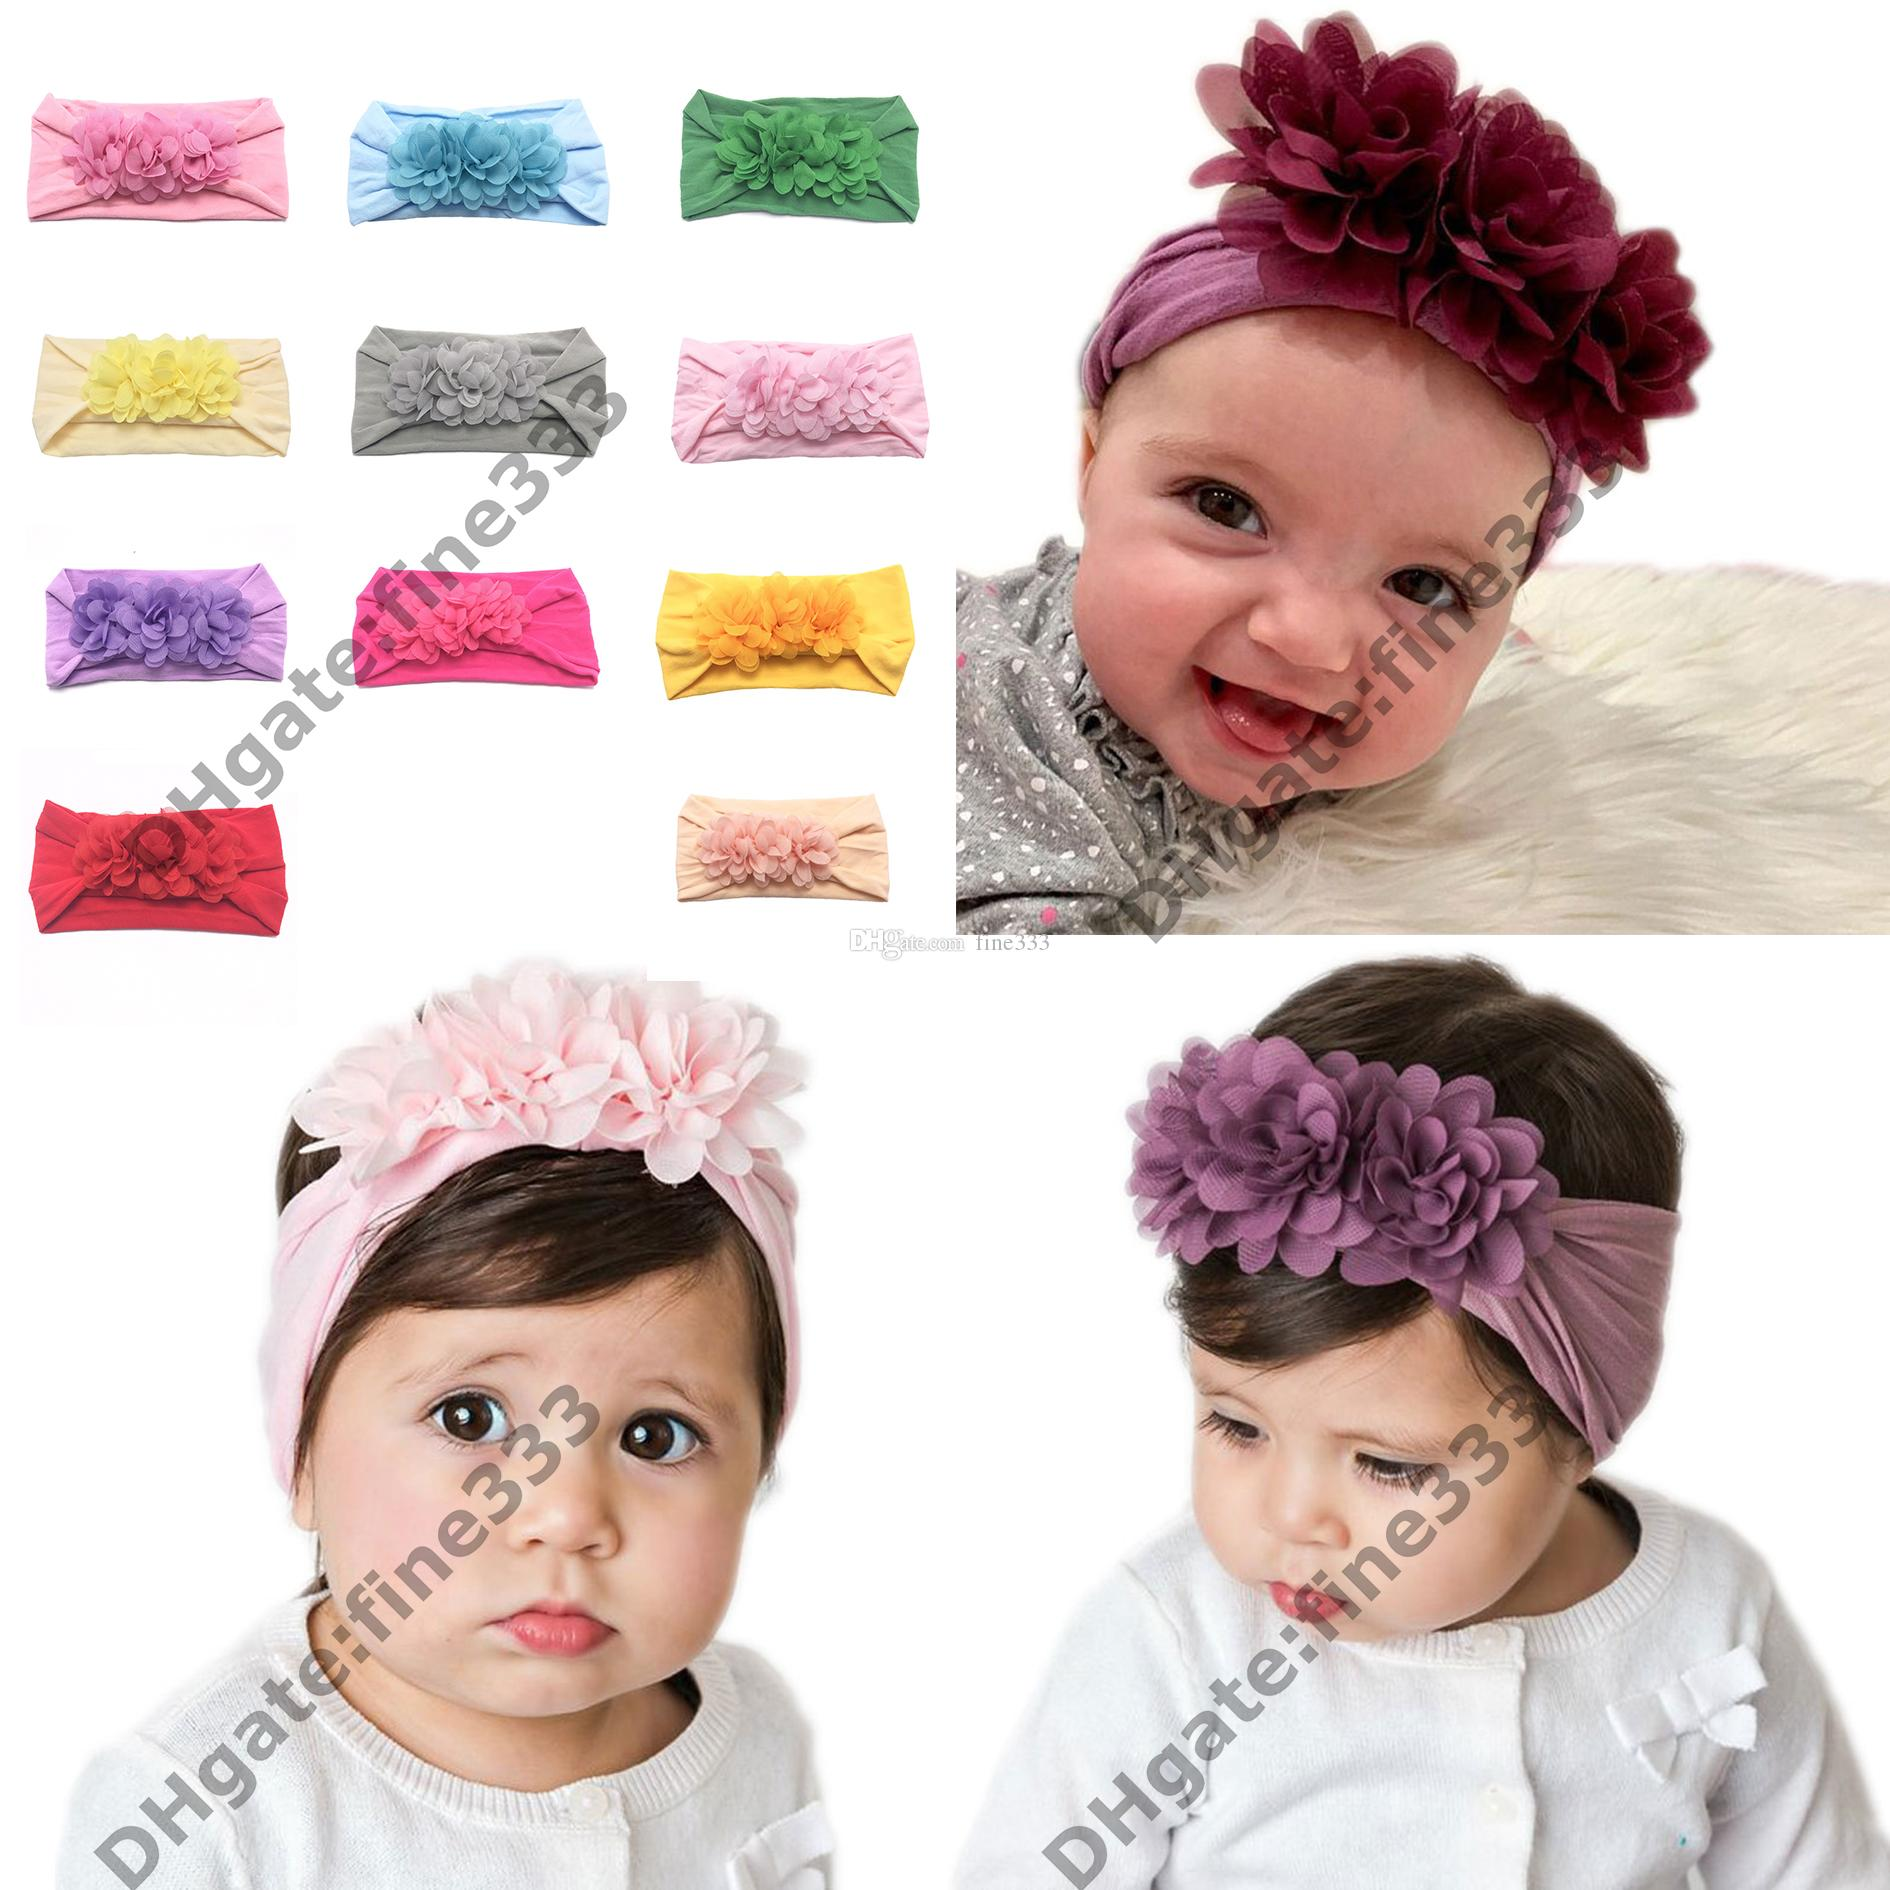 Turban Headband Children Kids DIY Bowknot Headbands Baby Cotton Bow Headwraps Hair Accessories Hair Bands Bandana